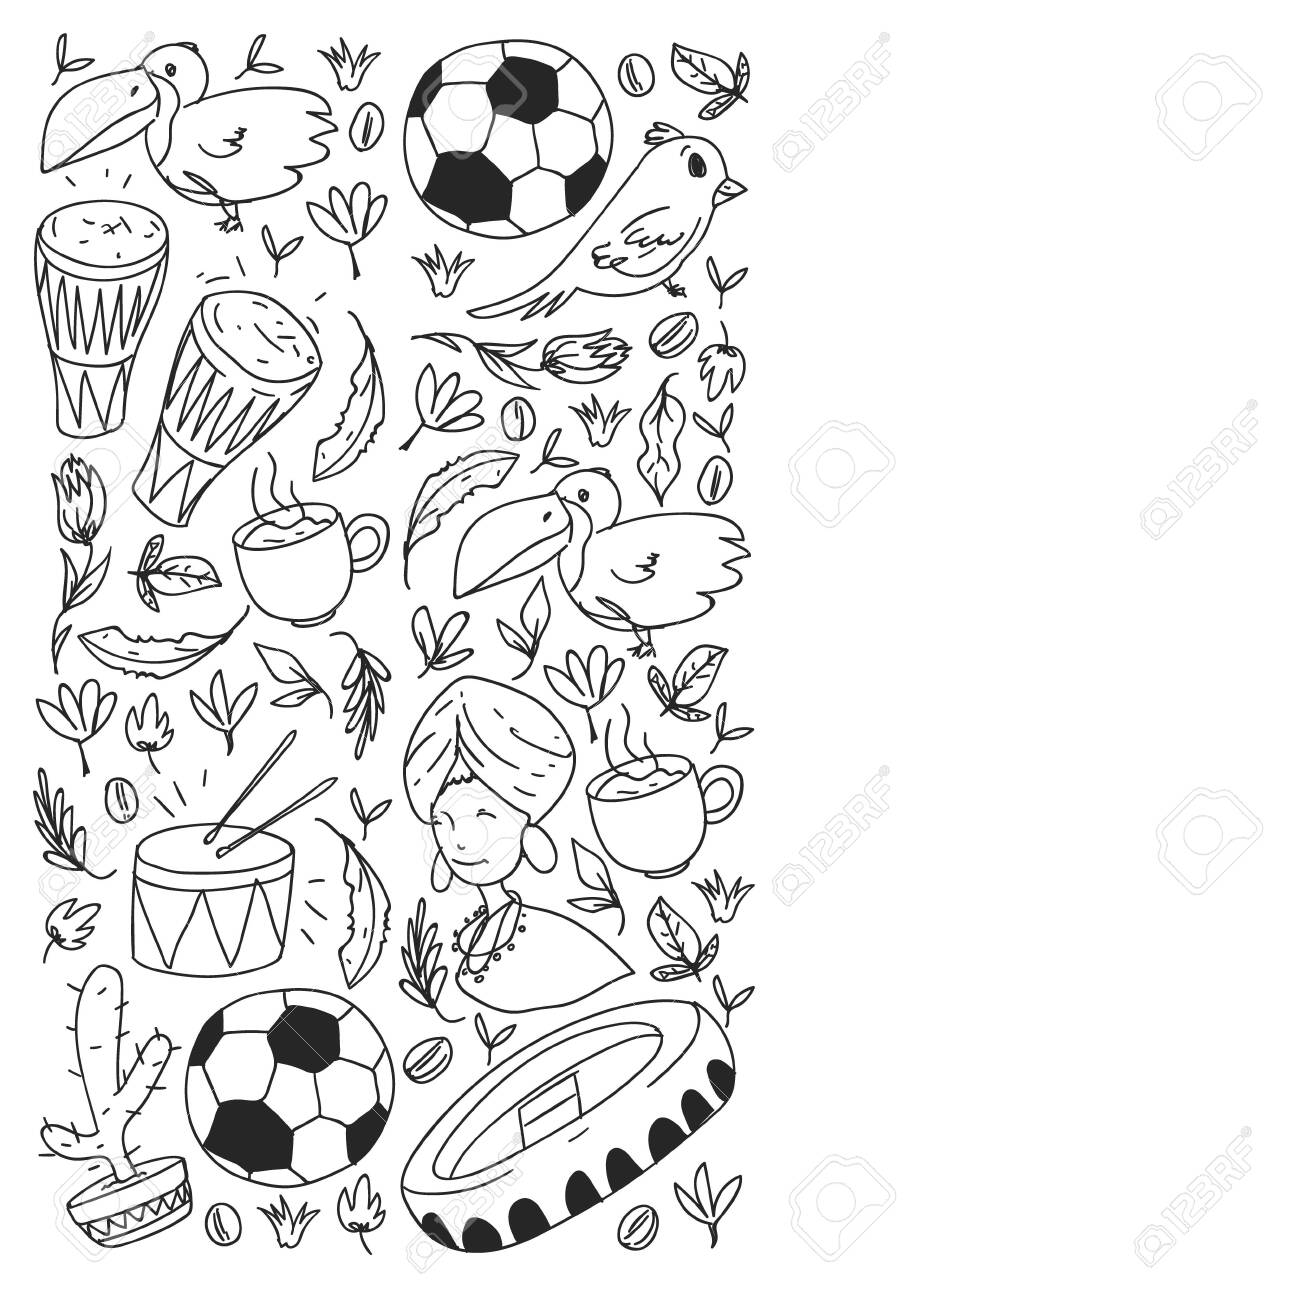 American Symbols Coloring Pages - GetColoringPages.com | 1300x1300